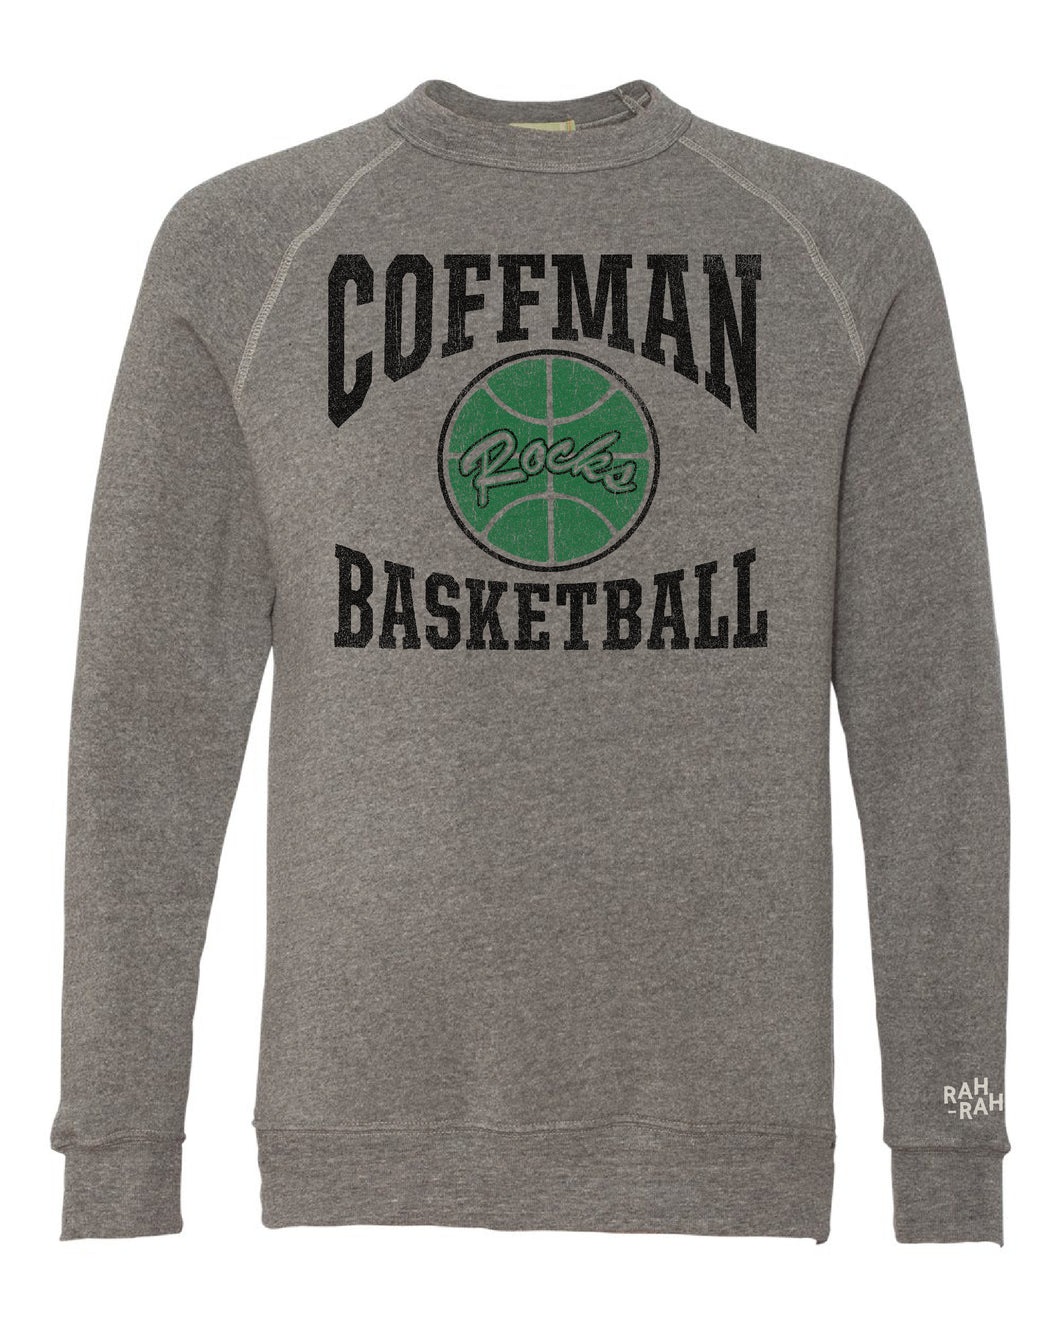 Coffman Basketball Throwback Sweatshirt | Heather Grey